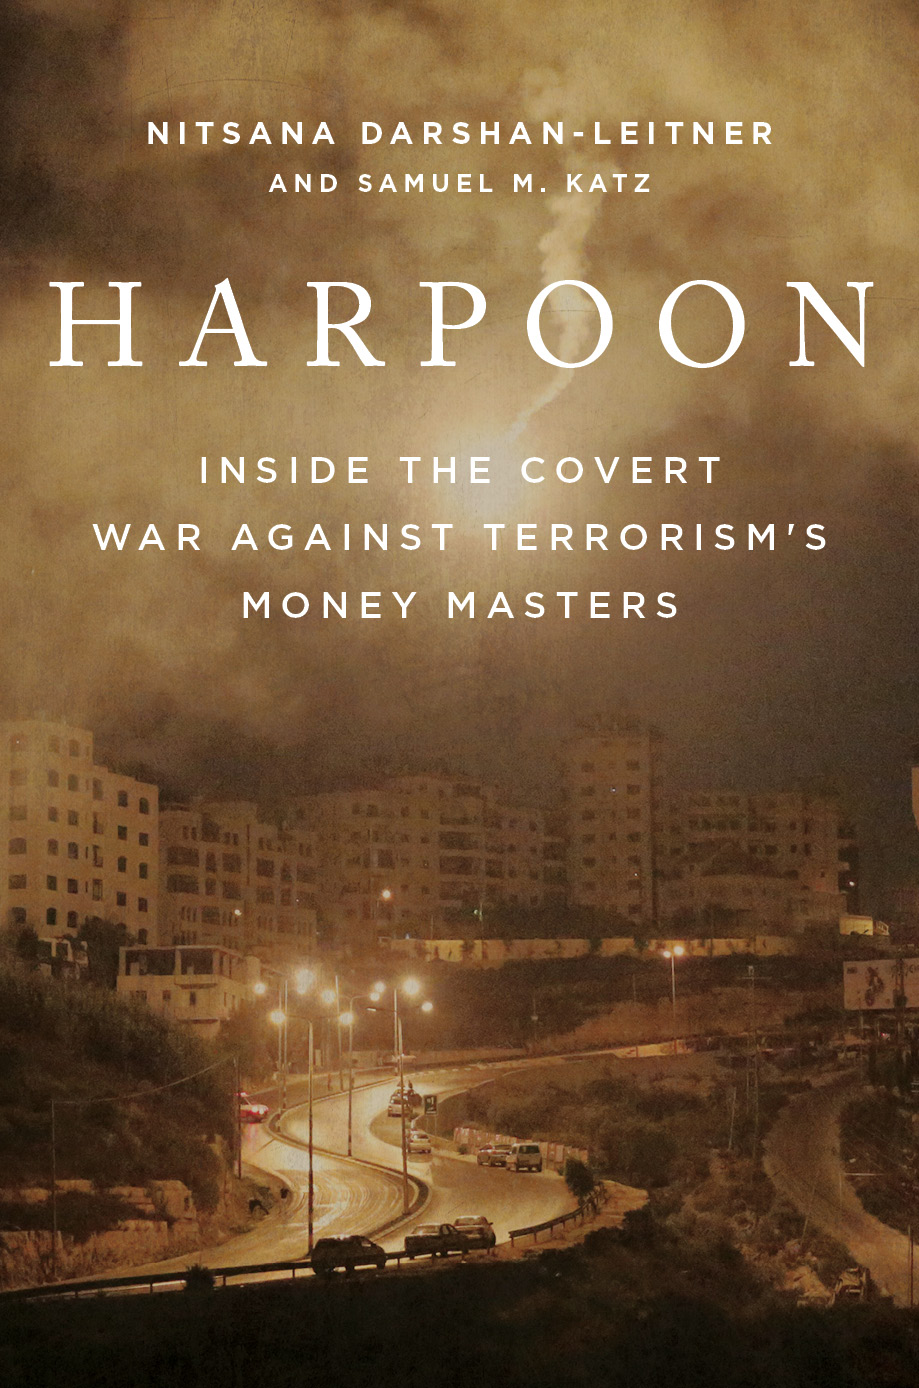 HARPOON Cover.JPG